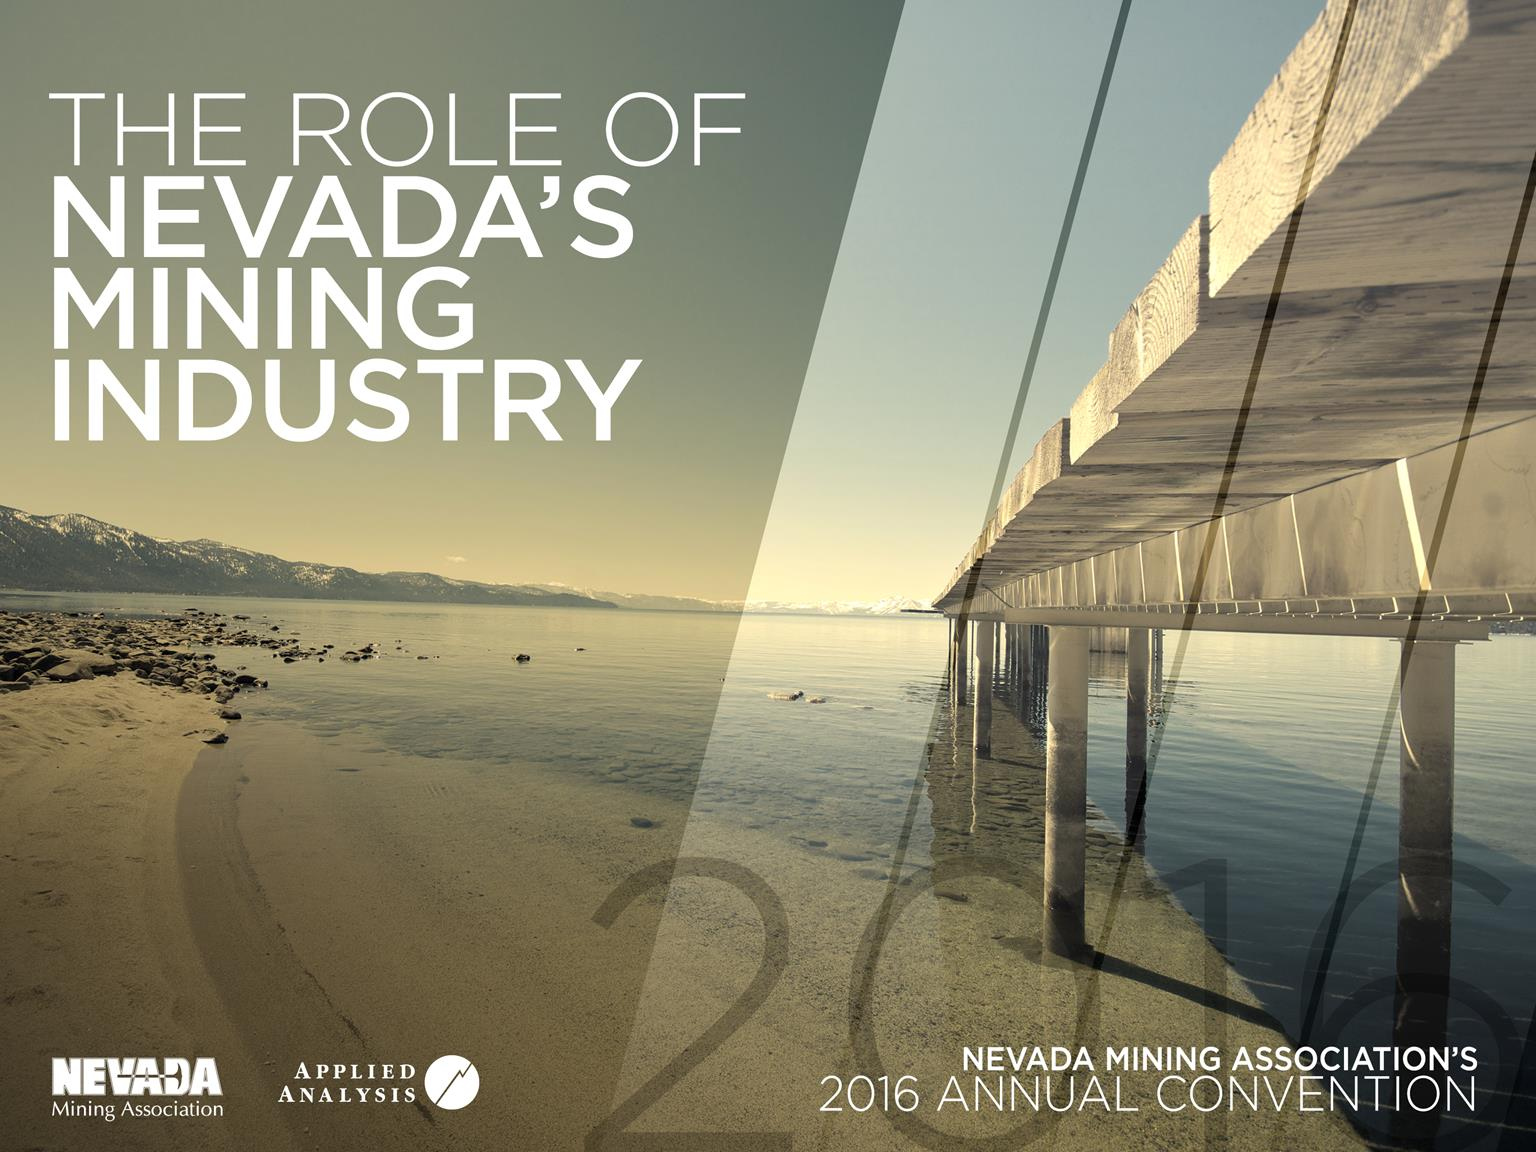 Nevada Economy 2016: The Role of Nevada's Mining Industry